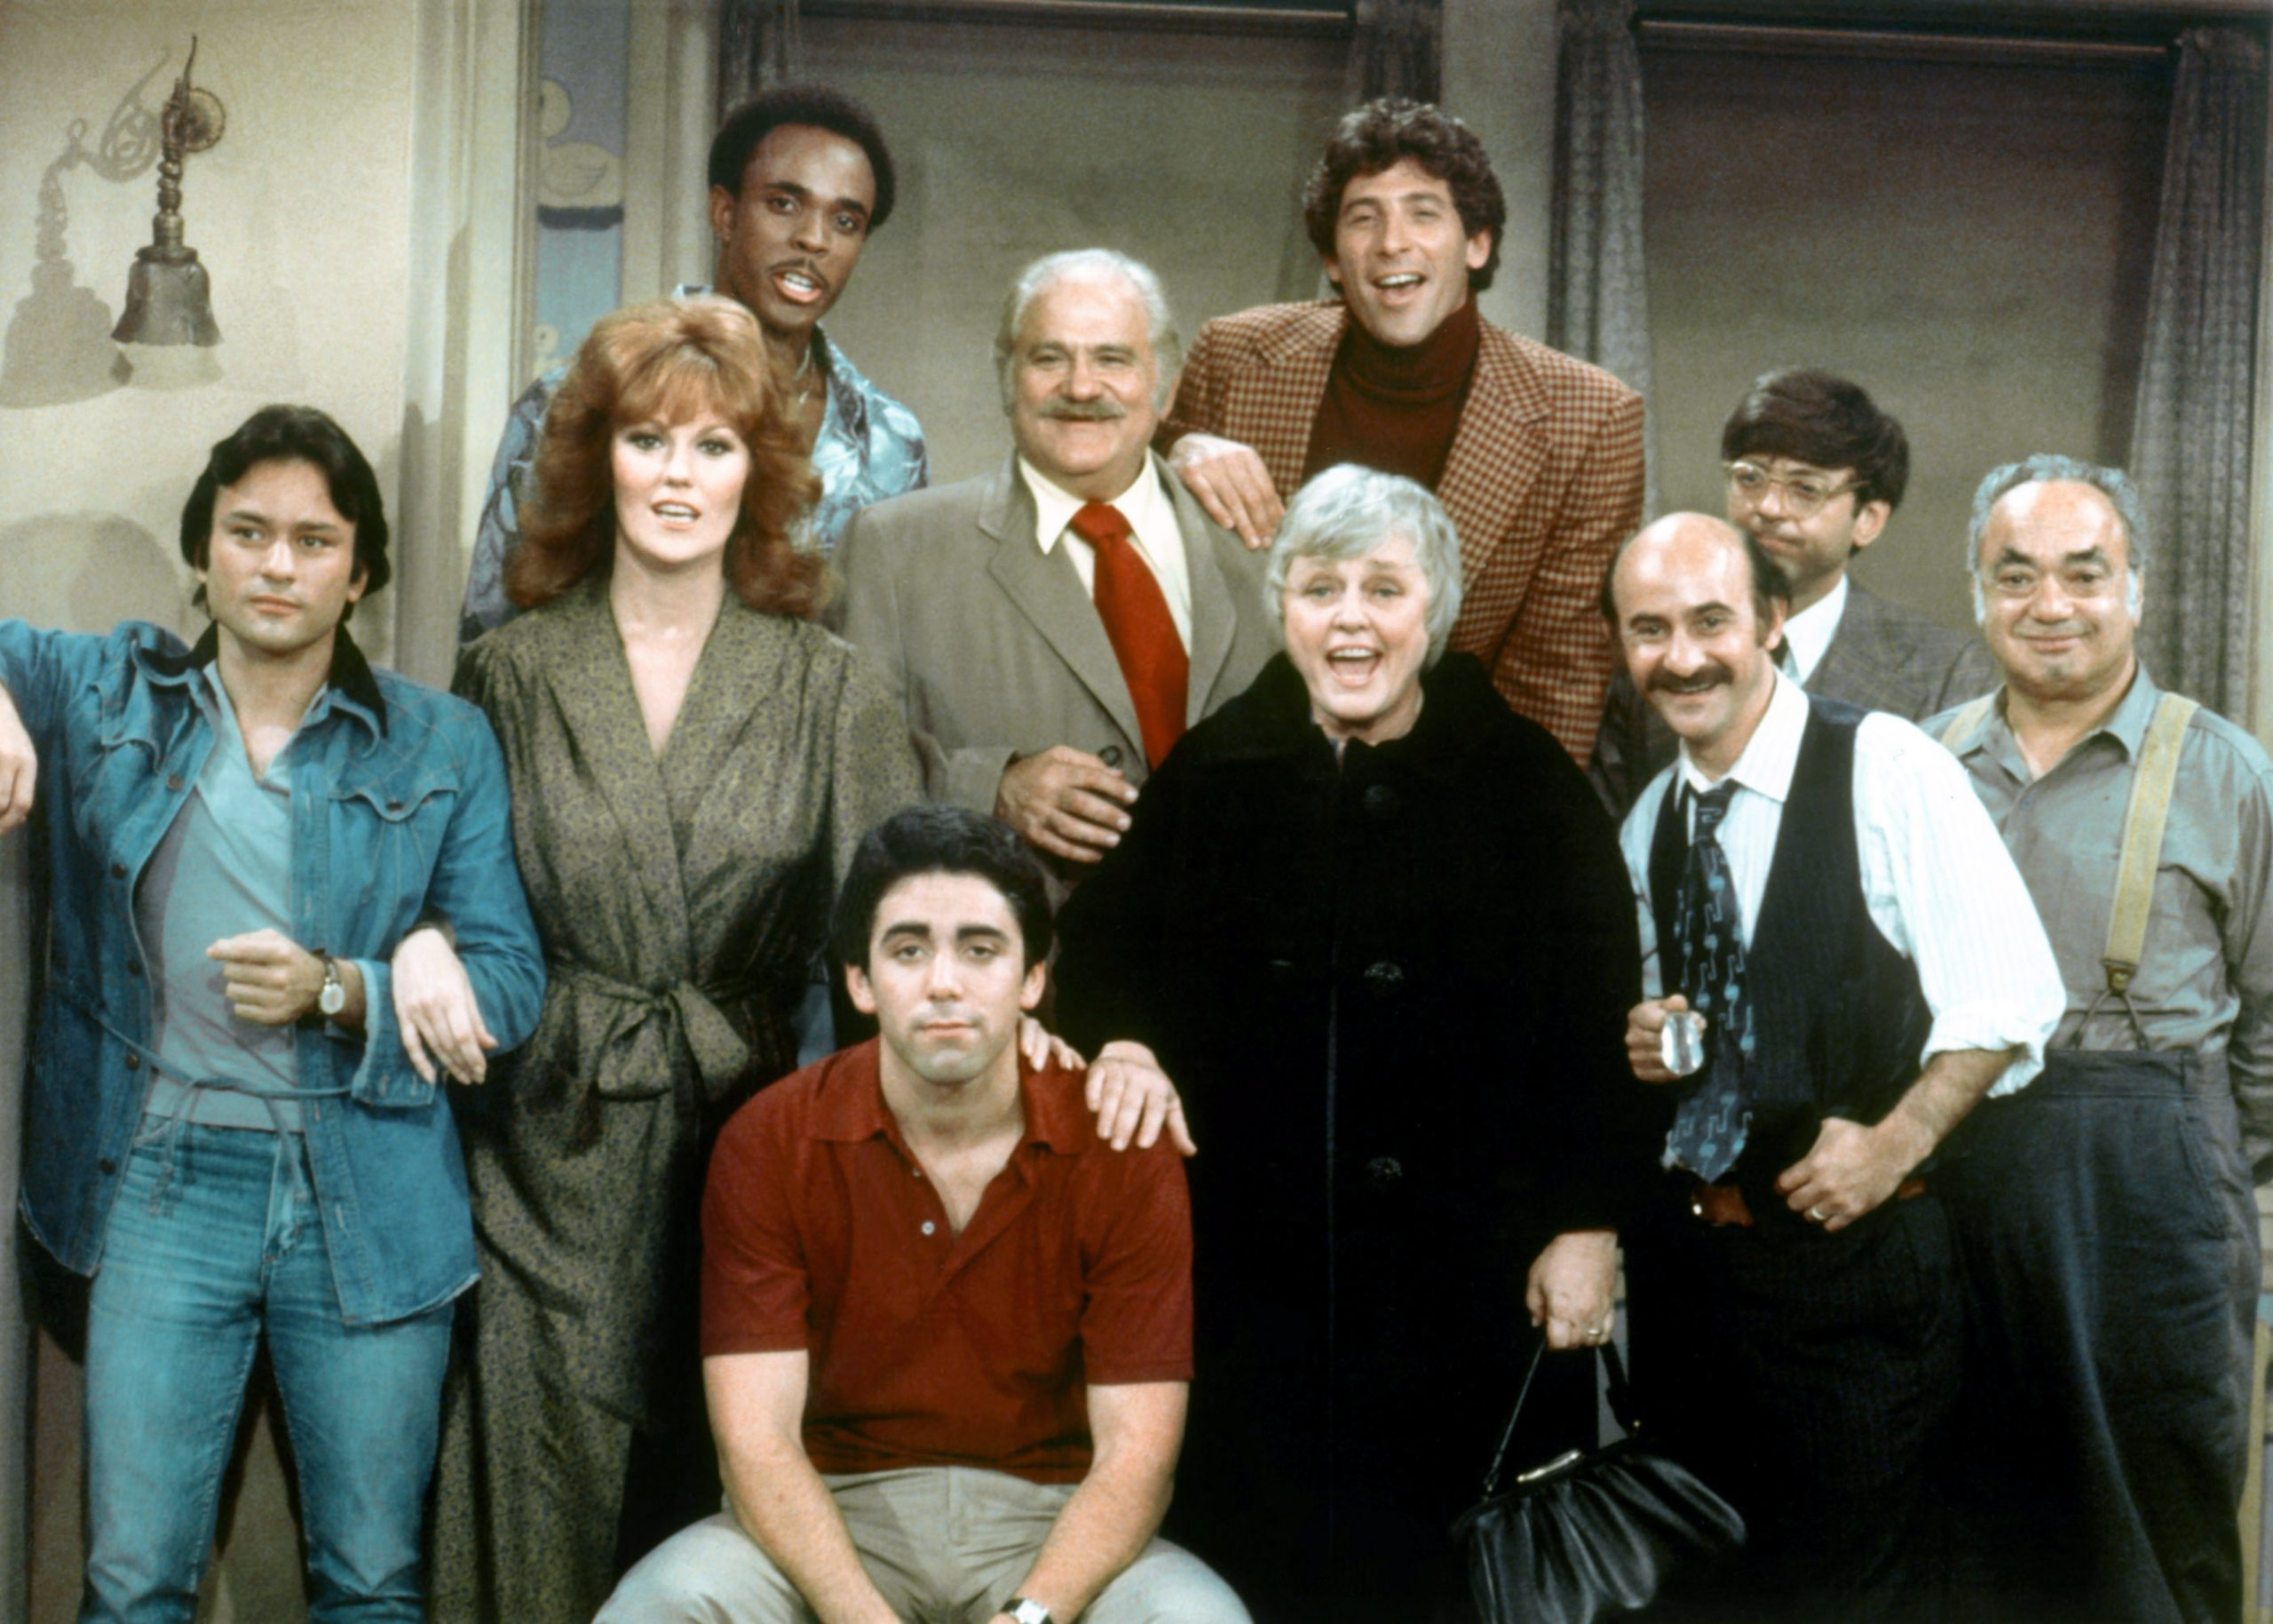 Danny Goldman, second from right